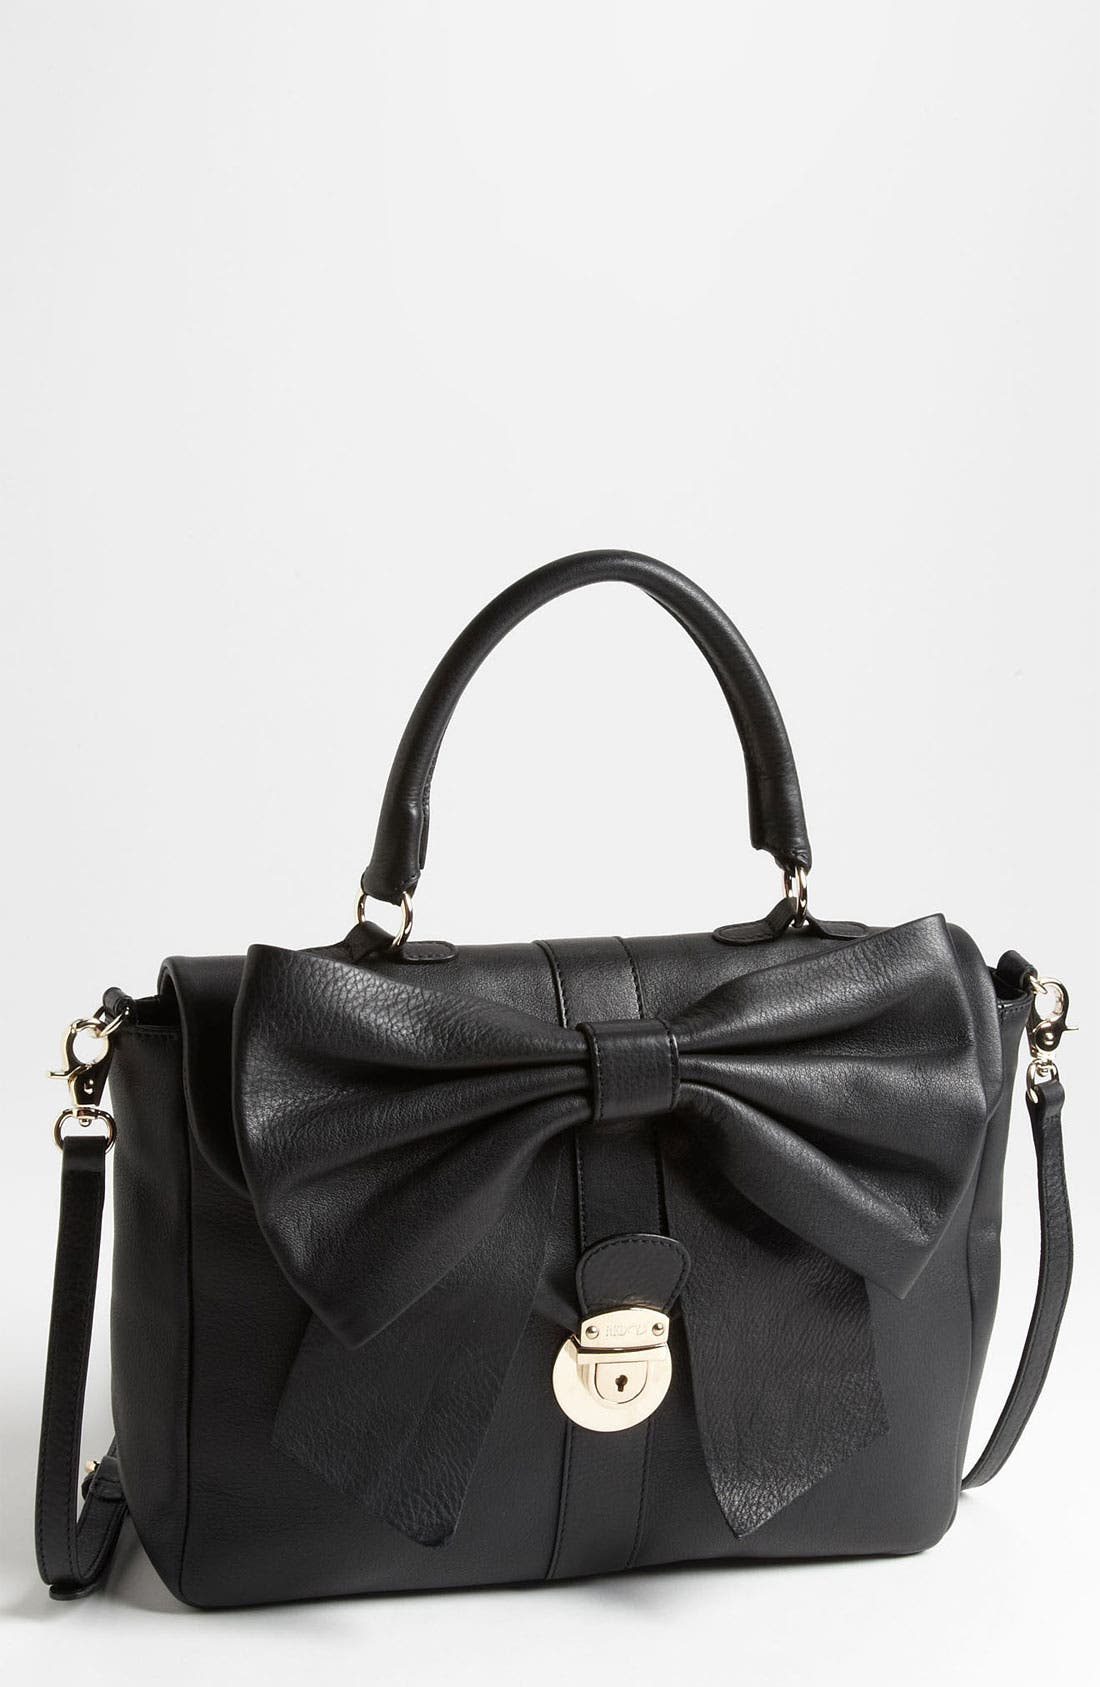 Alternate Image 1 Selected - RED Valentino 'Bow' Top Handle Leather Satchel